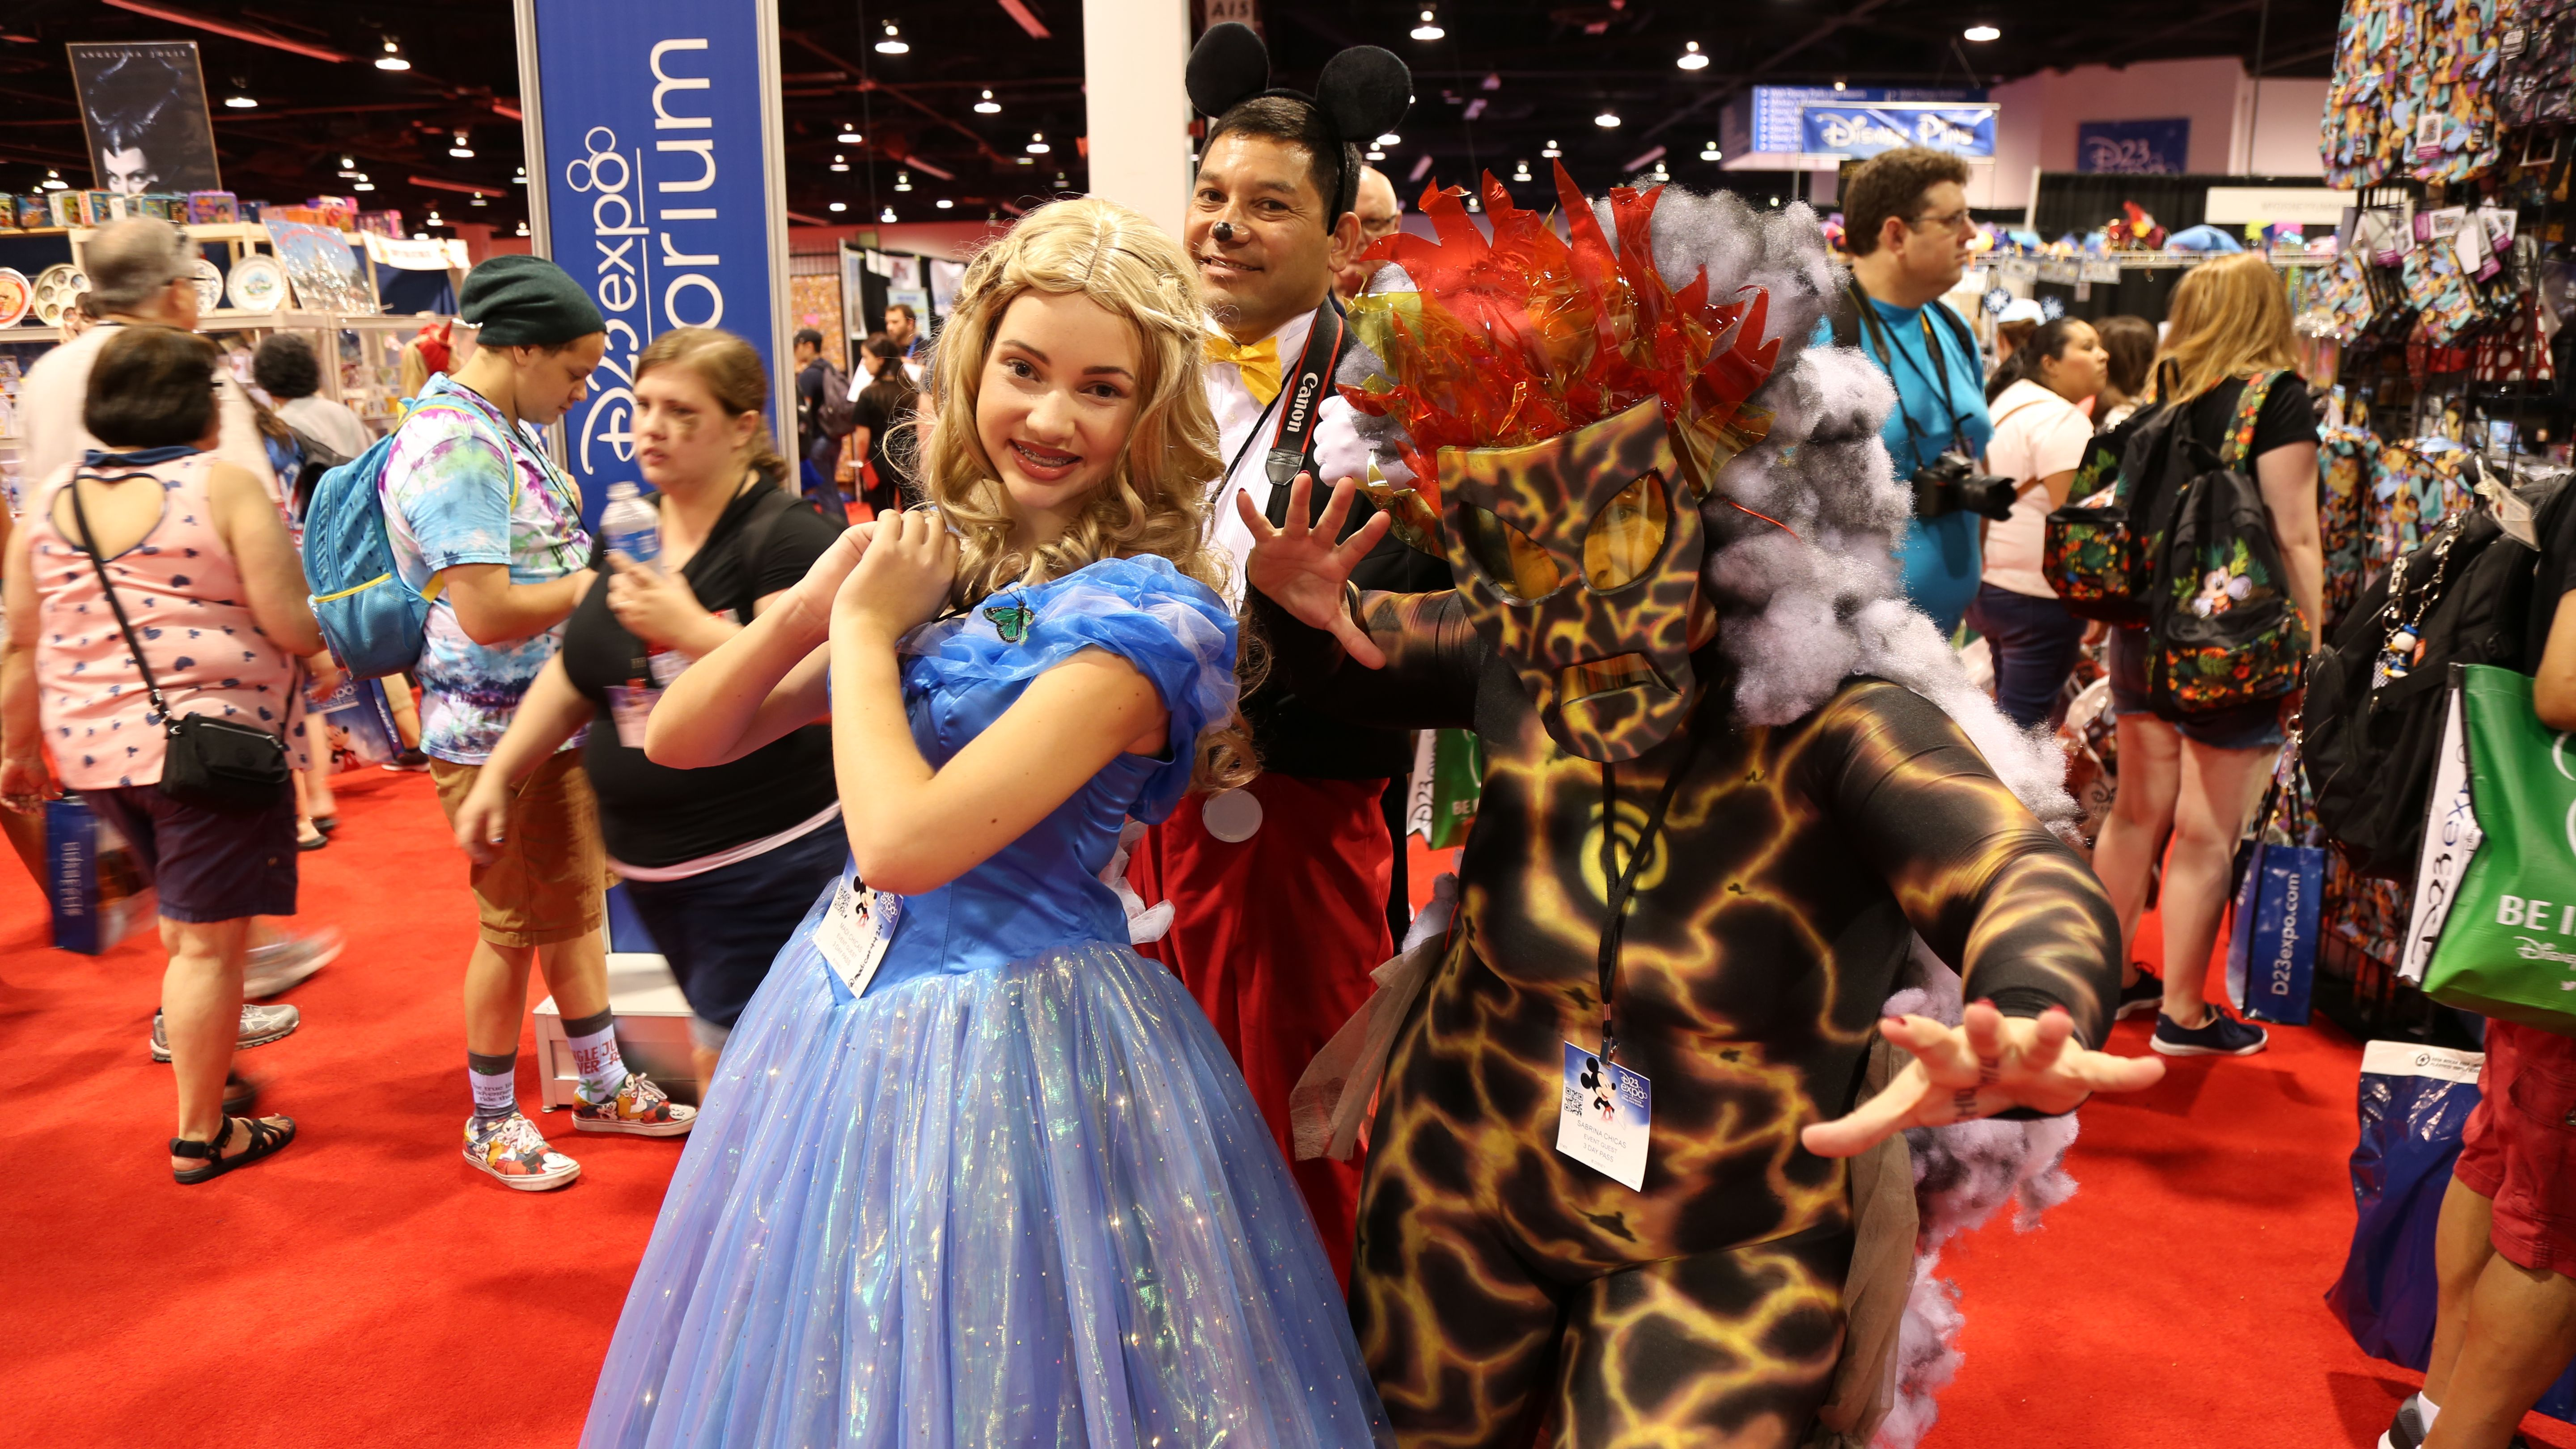 D23 Over 50 Convention Floor Images Reveal Disney Cosplay